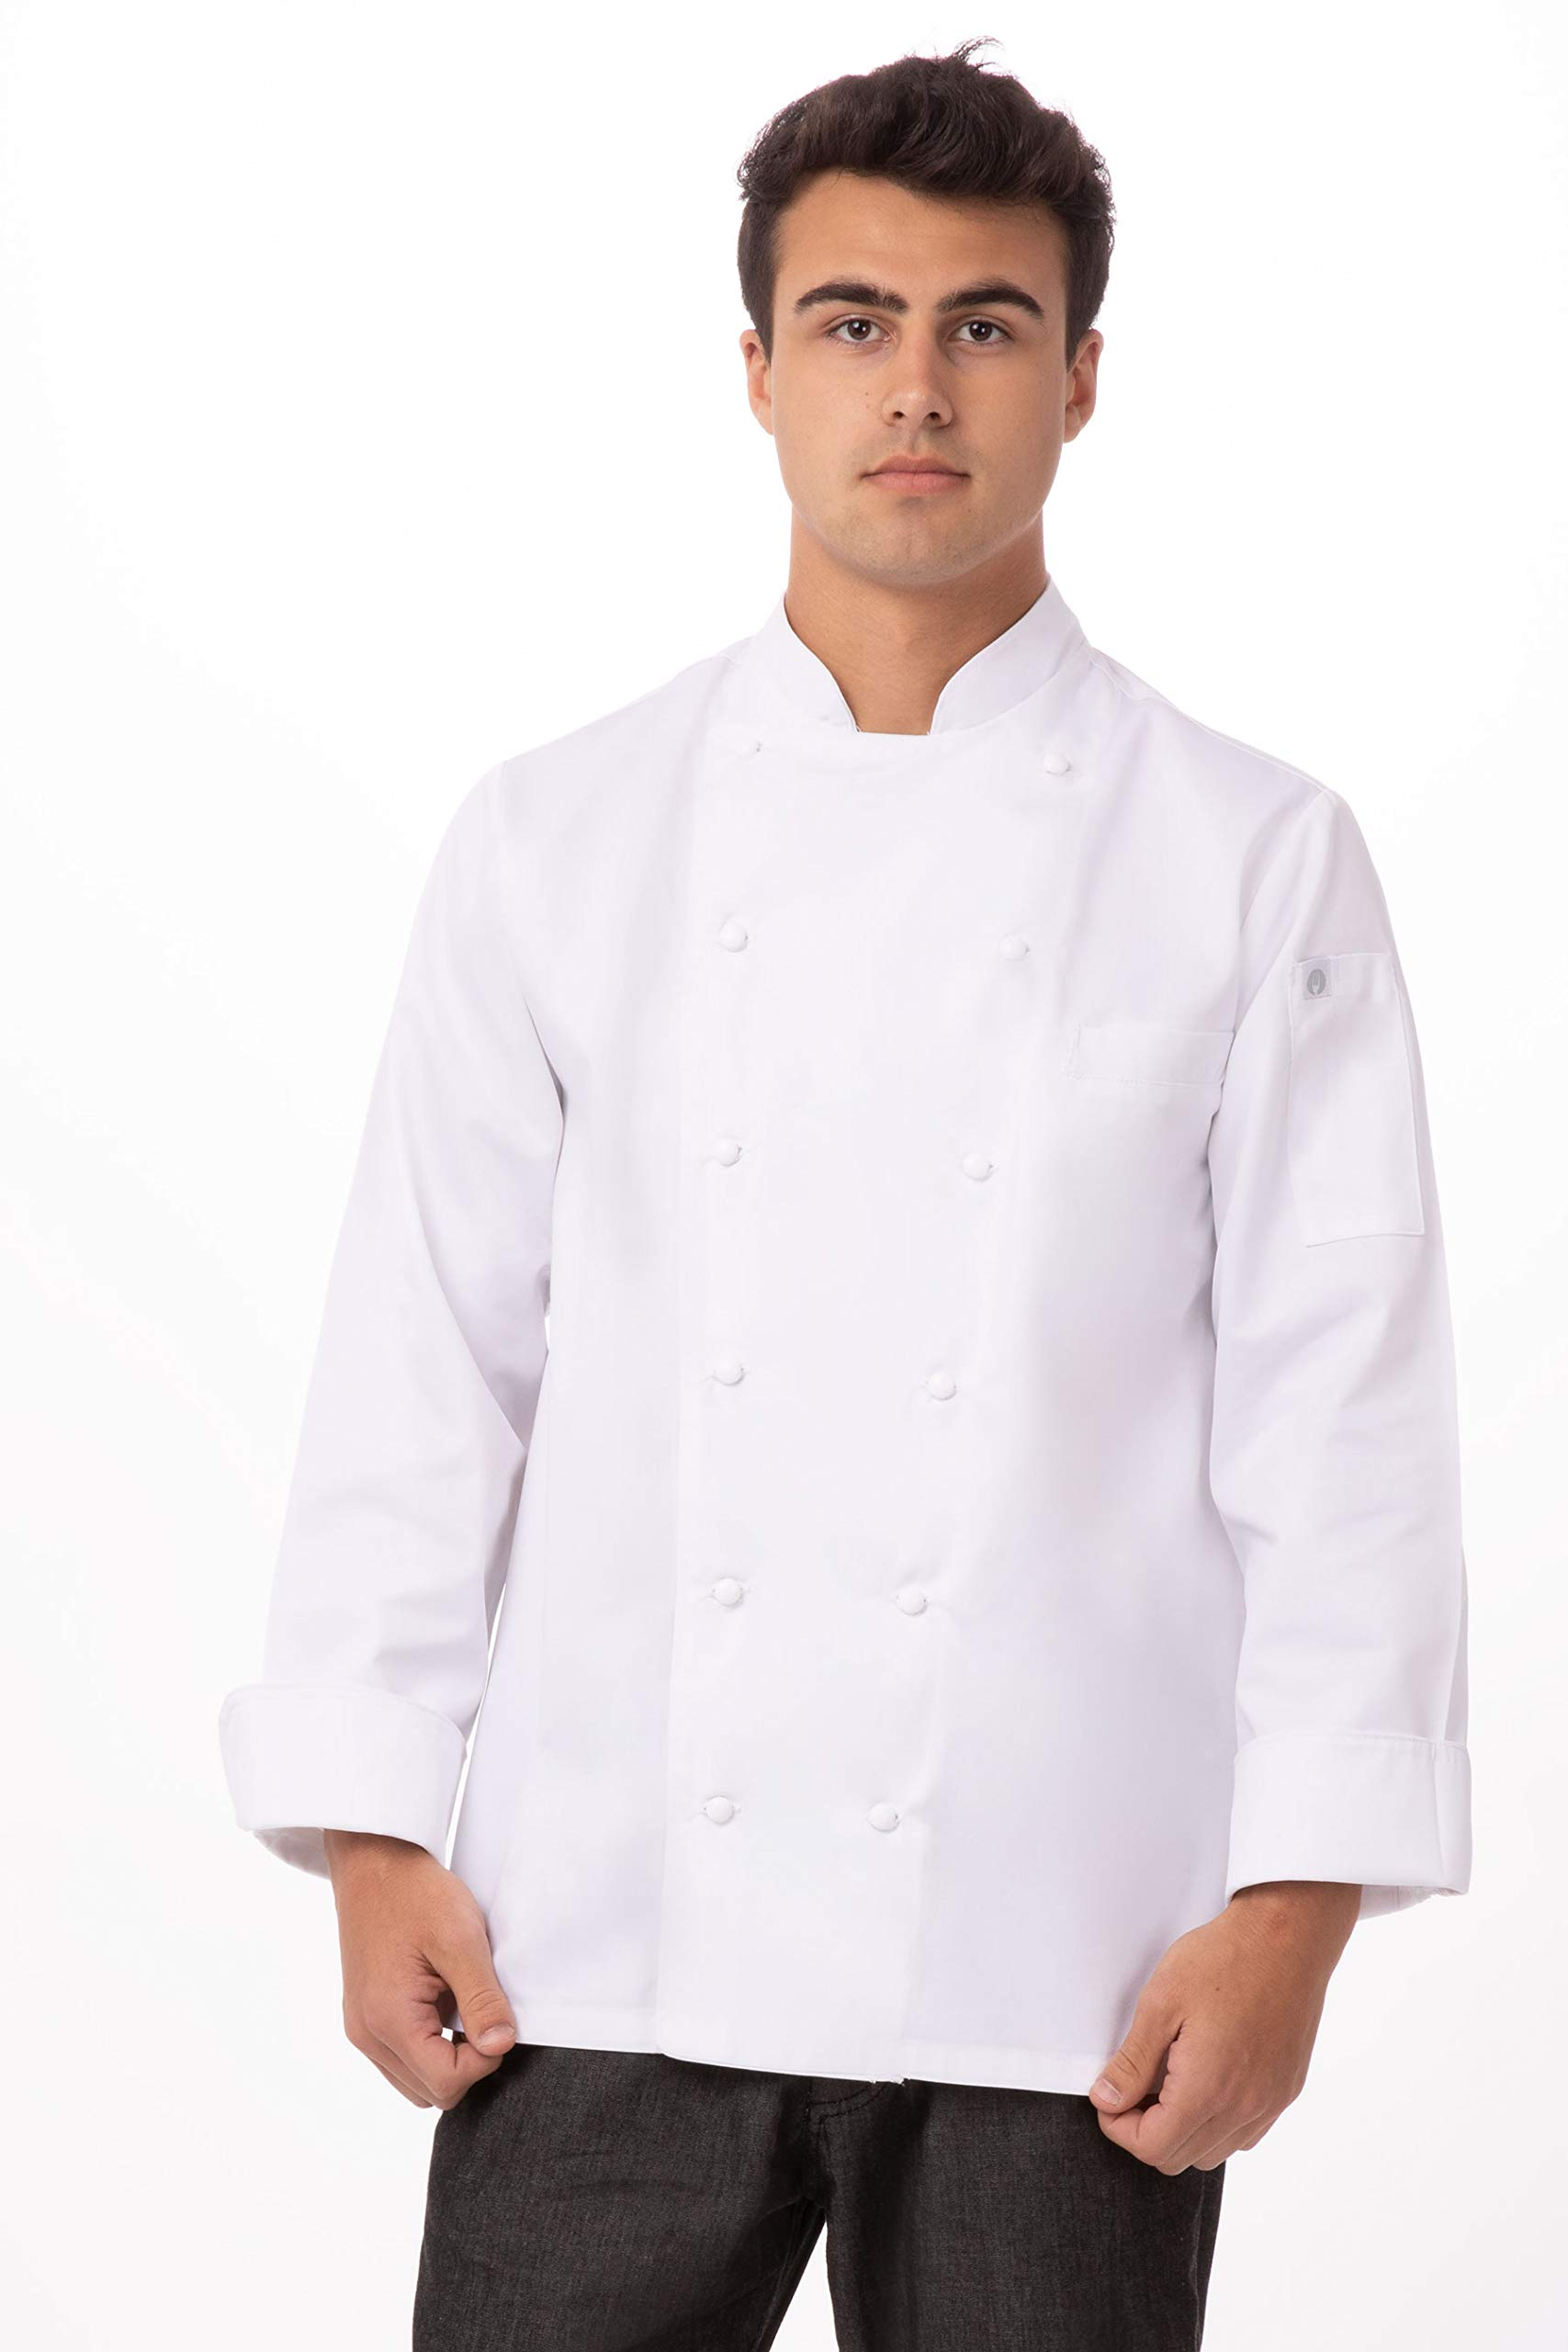 Chef Works Men's Monza Executive Chef Coat, White, Medium by Chef Works